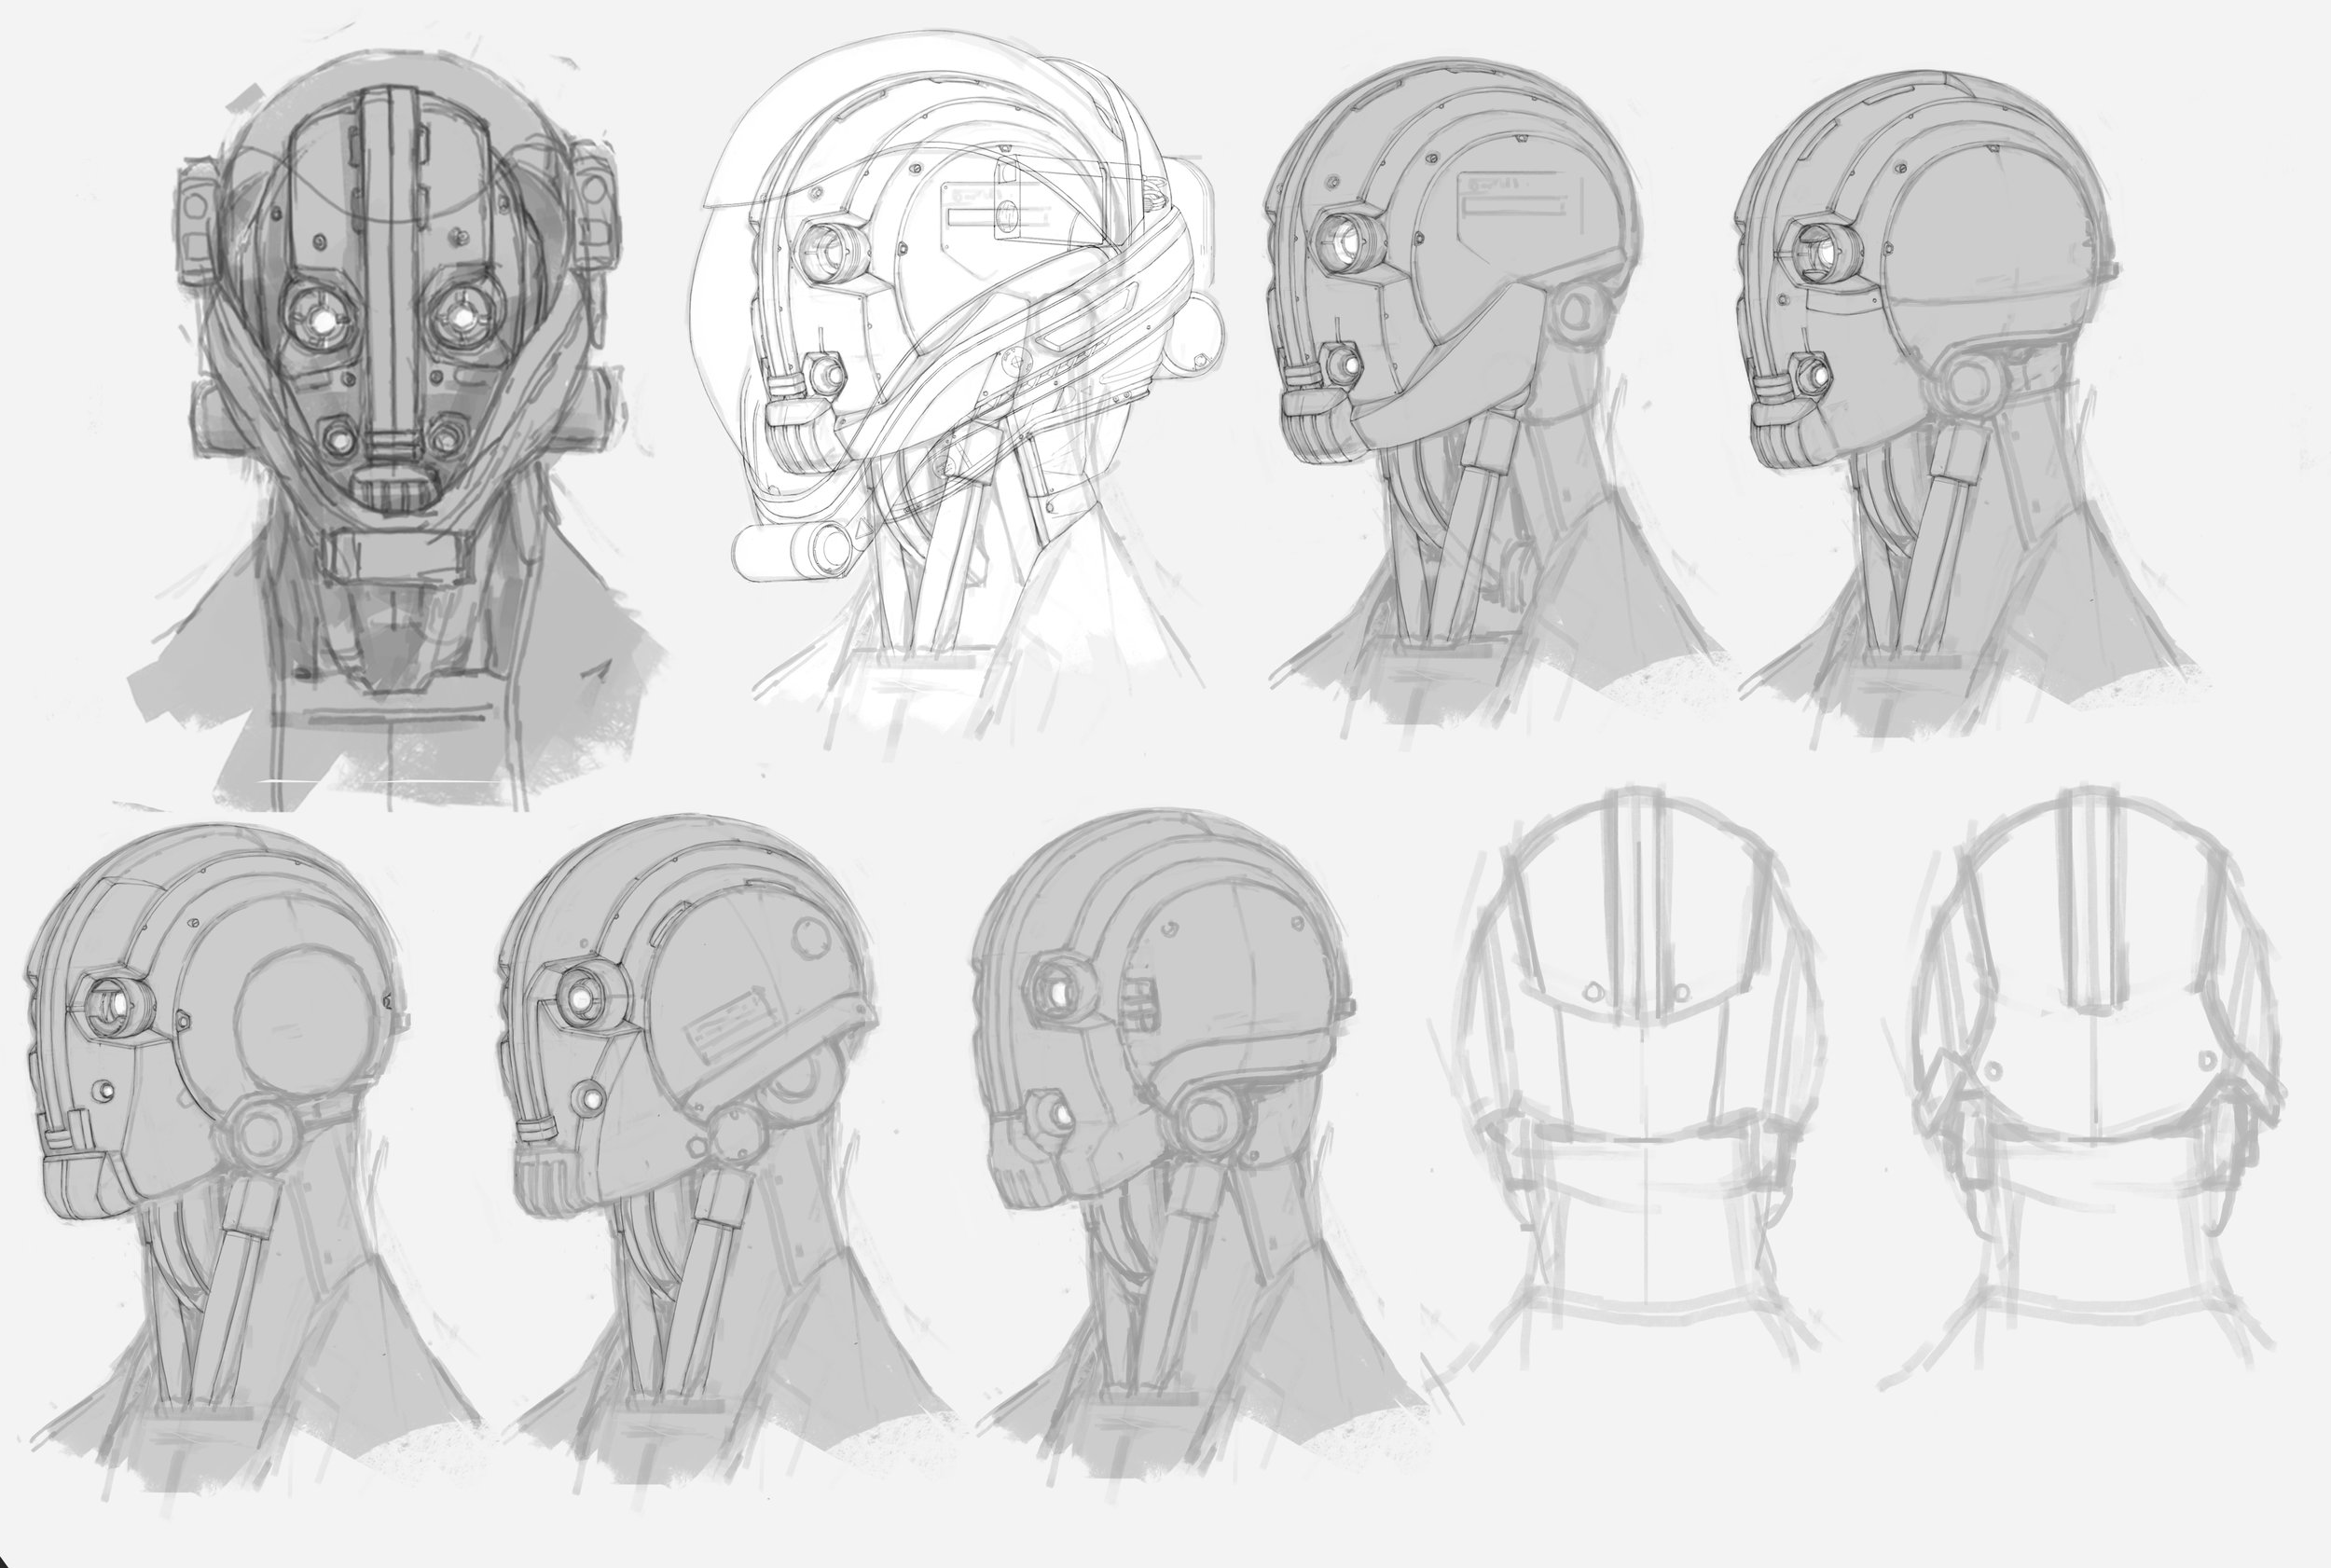 Jack - head sketches